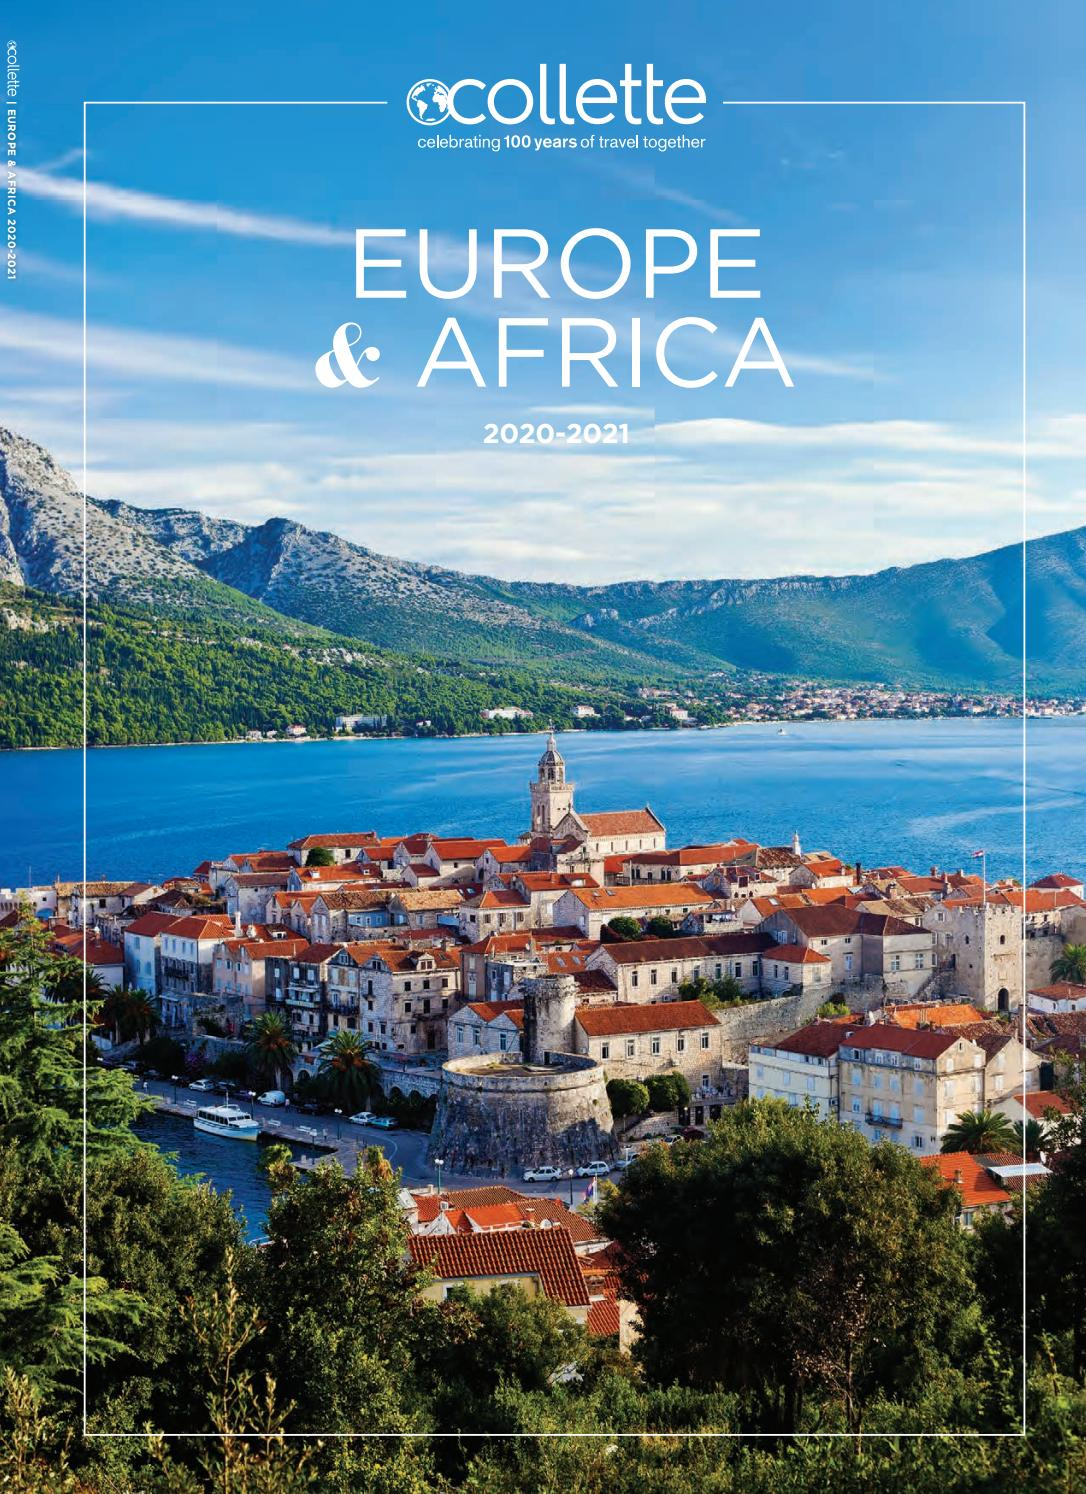 2020 2021 Europe Africa Aus By Collette Issuu